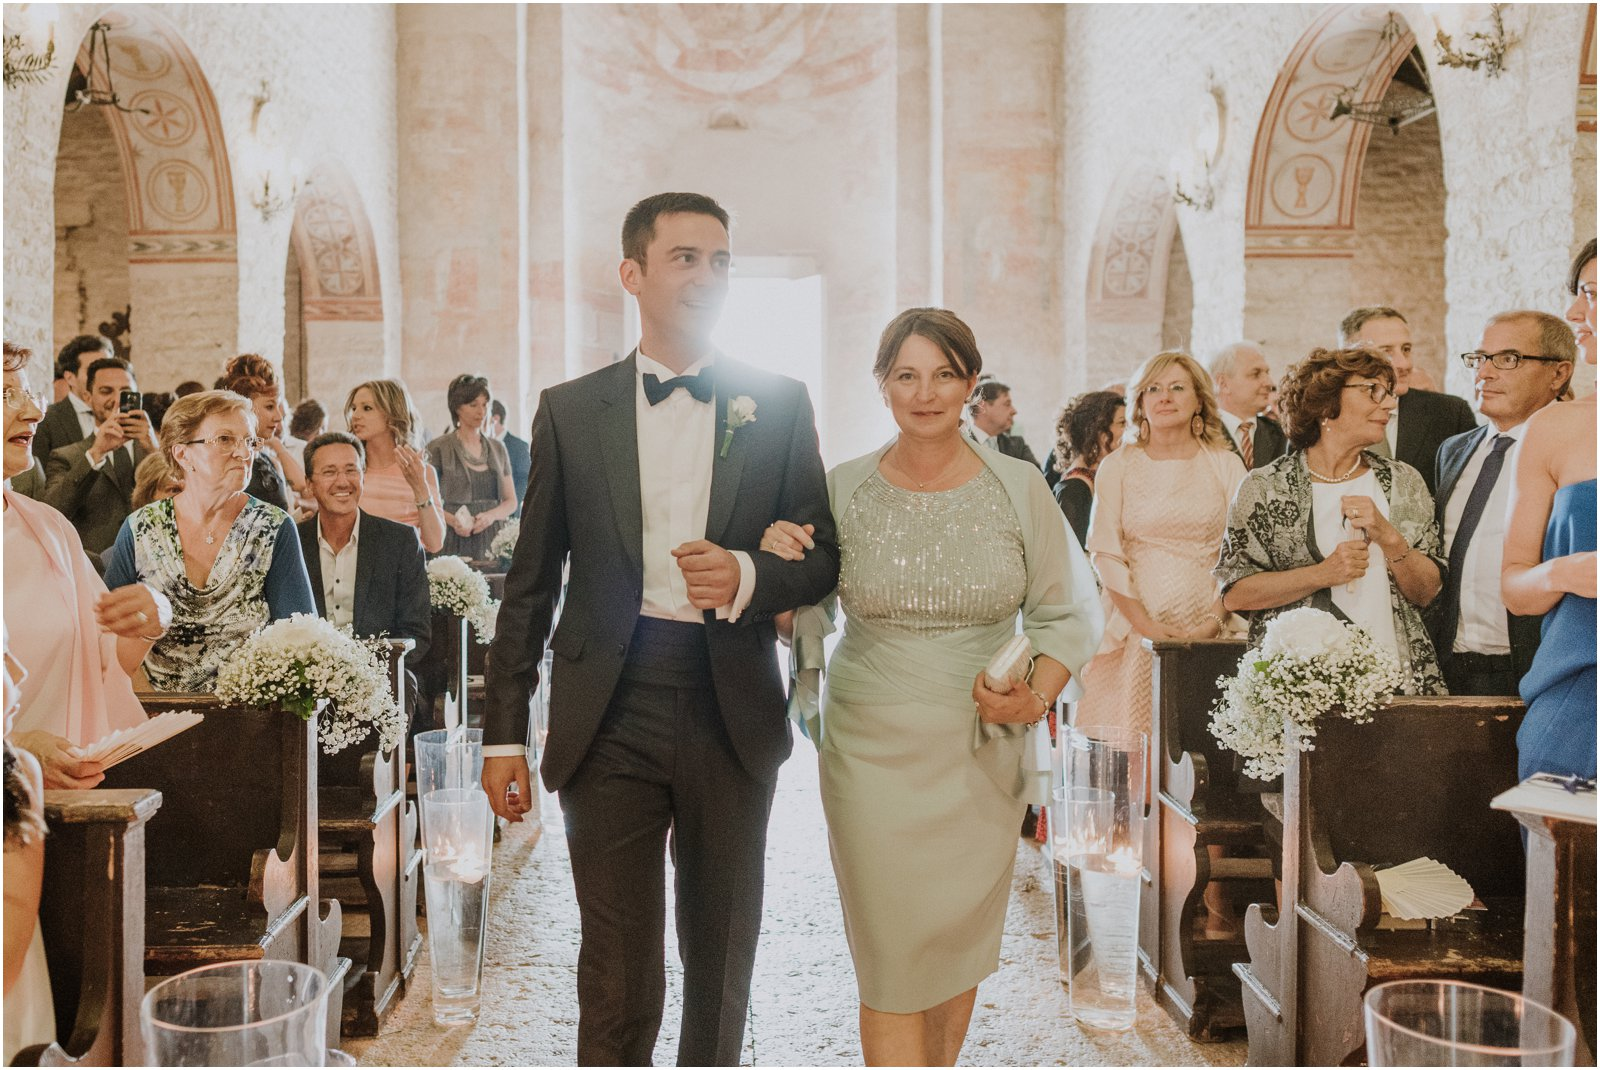 veronasposi foto e video matrimonio verona_0562